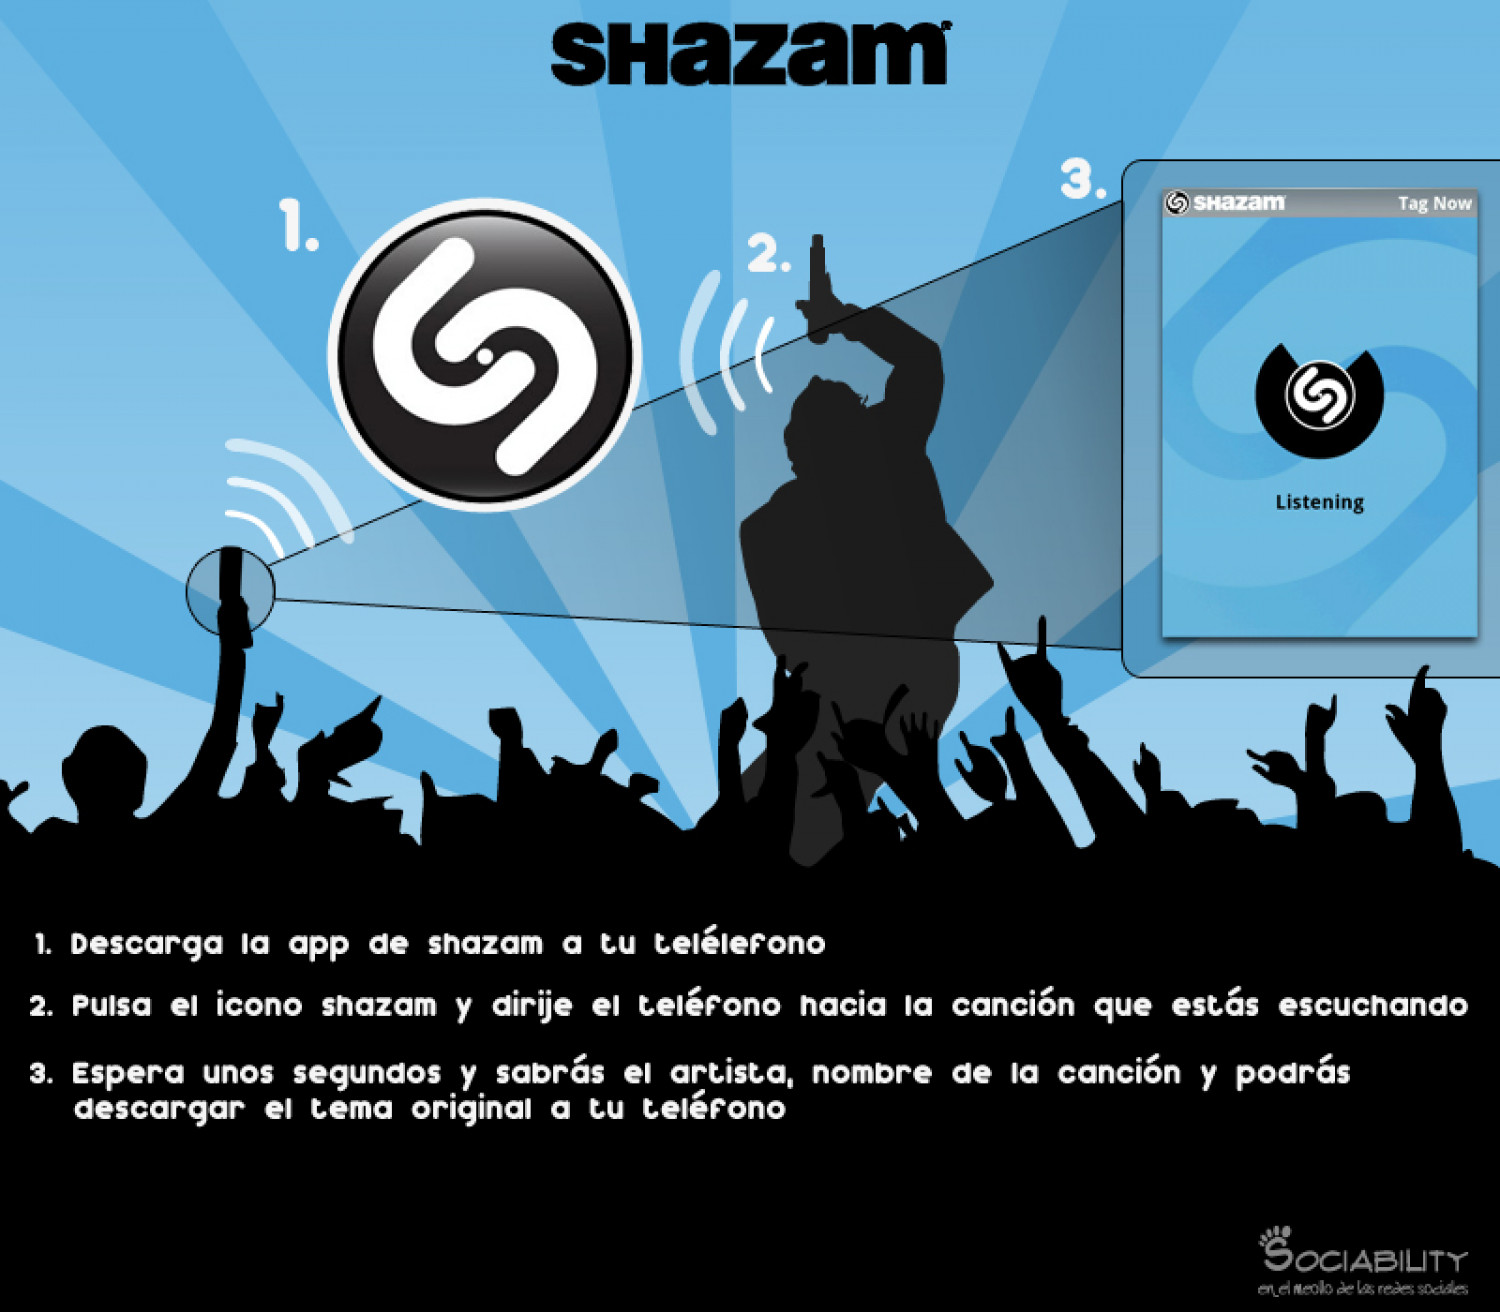 How to use Shazam Infographic